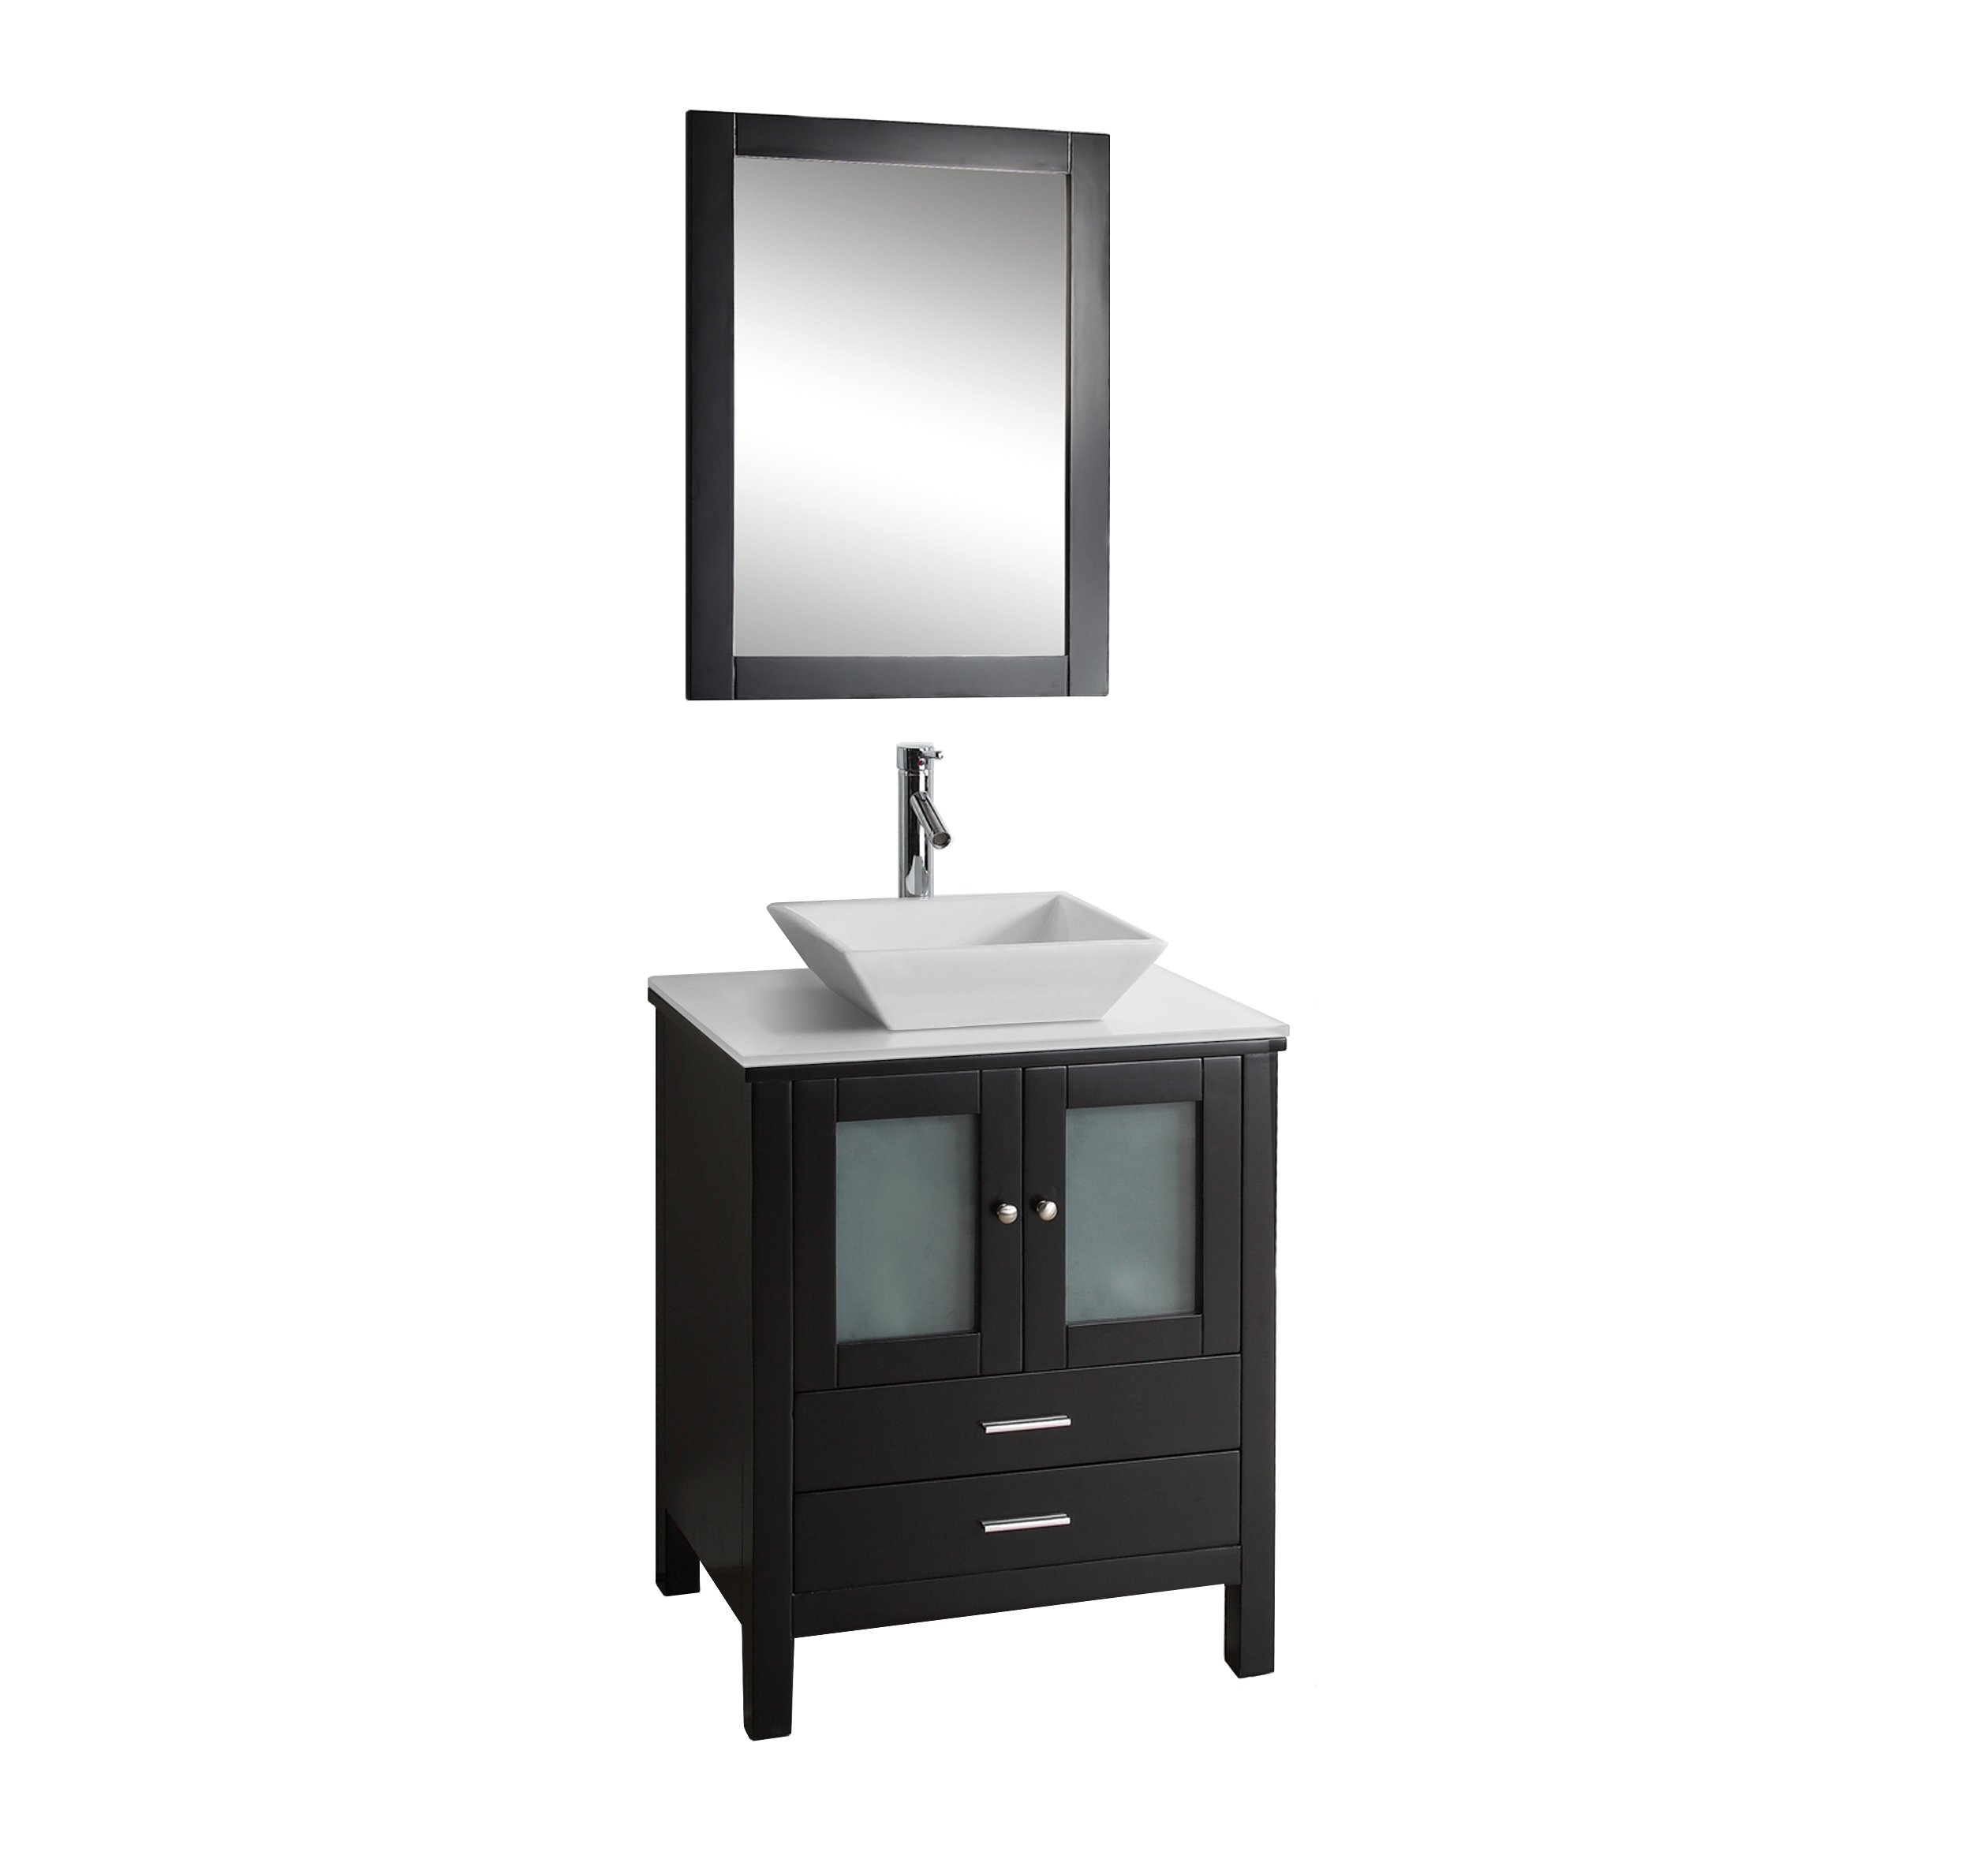 Virtu USA MS-4428-S-ES Brentford 28-Inch Single Sink Bathroom Vanity Set with White Stone Countertop, Chrome Faucet, Espresso Finish